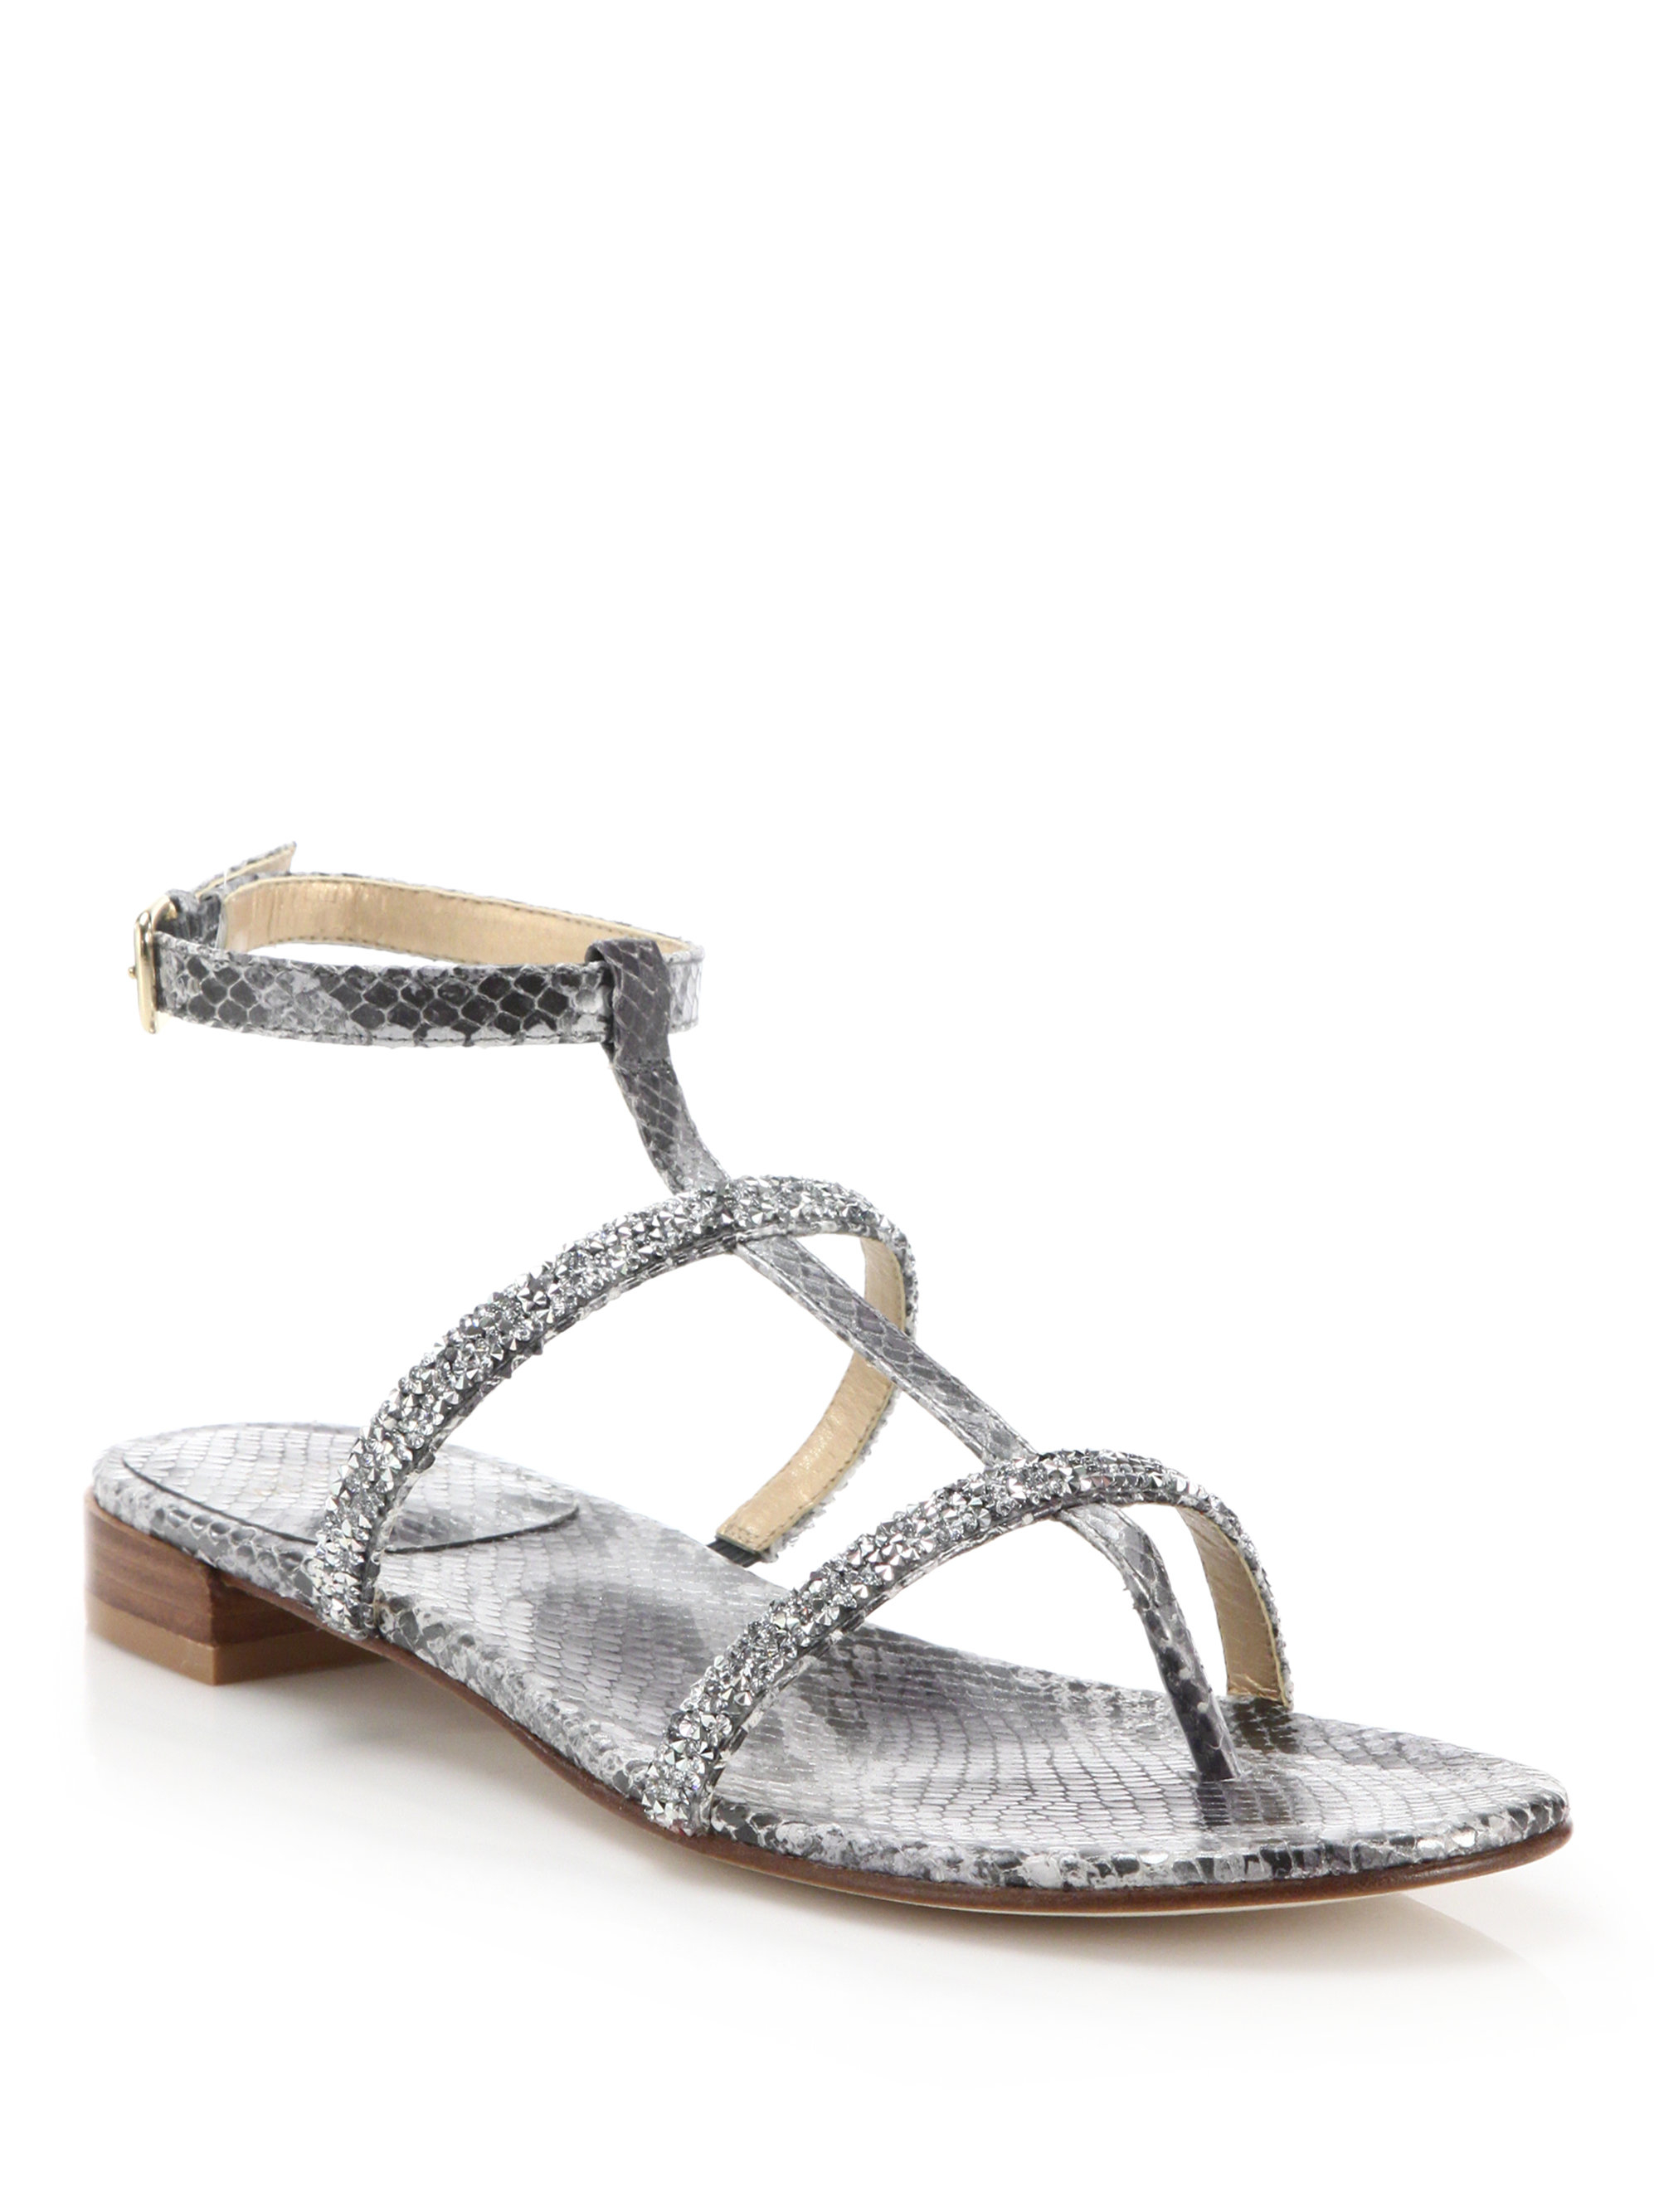 clearance in China authentic sale online Stuart Weitzman Leather Embossed Sandals wide range of sale online LIhq1JwV4P